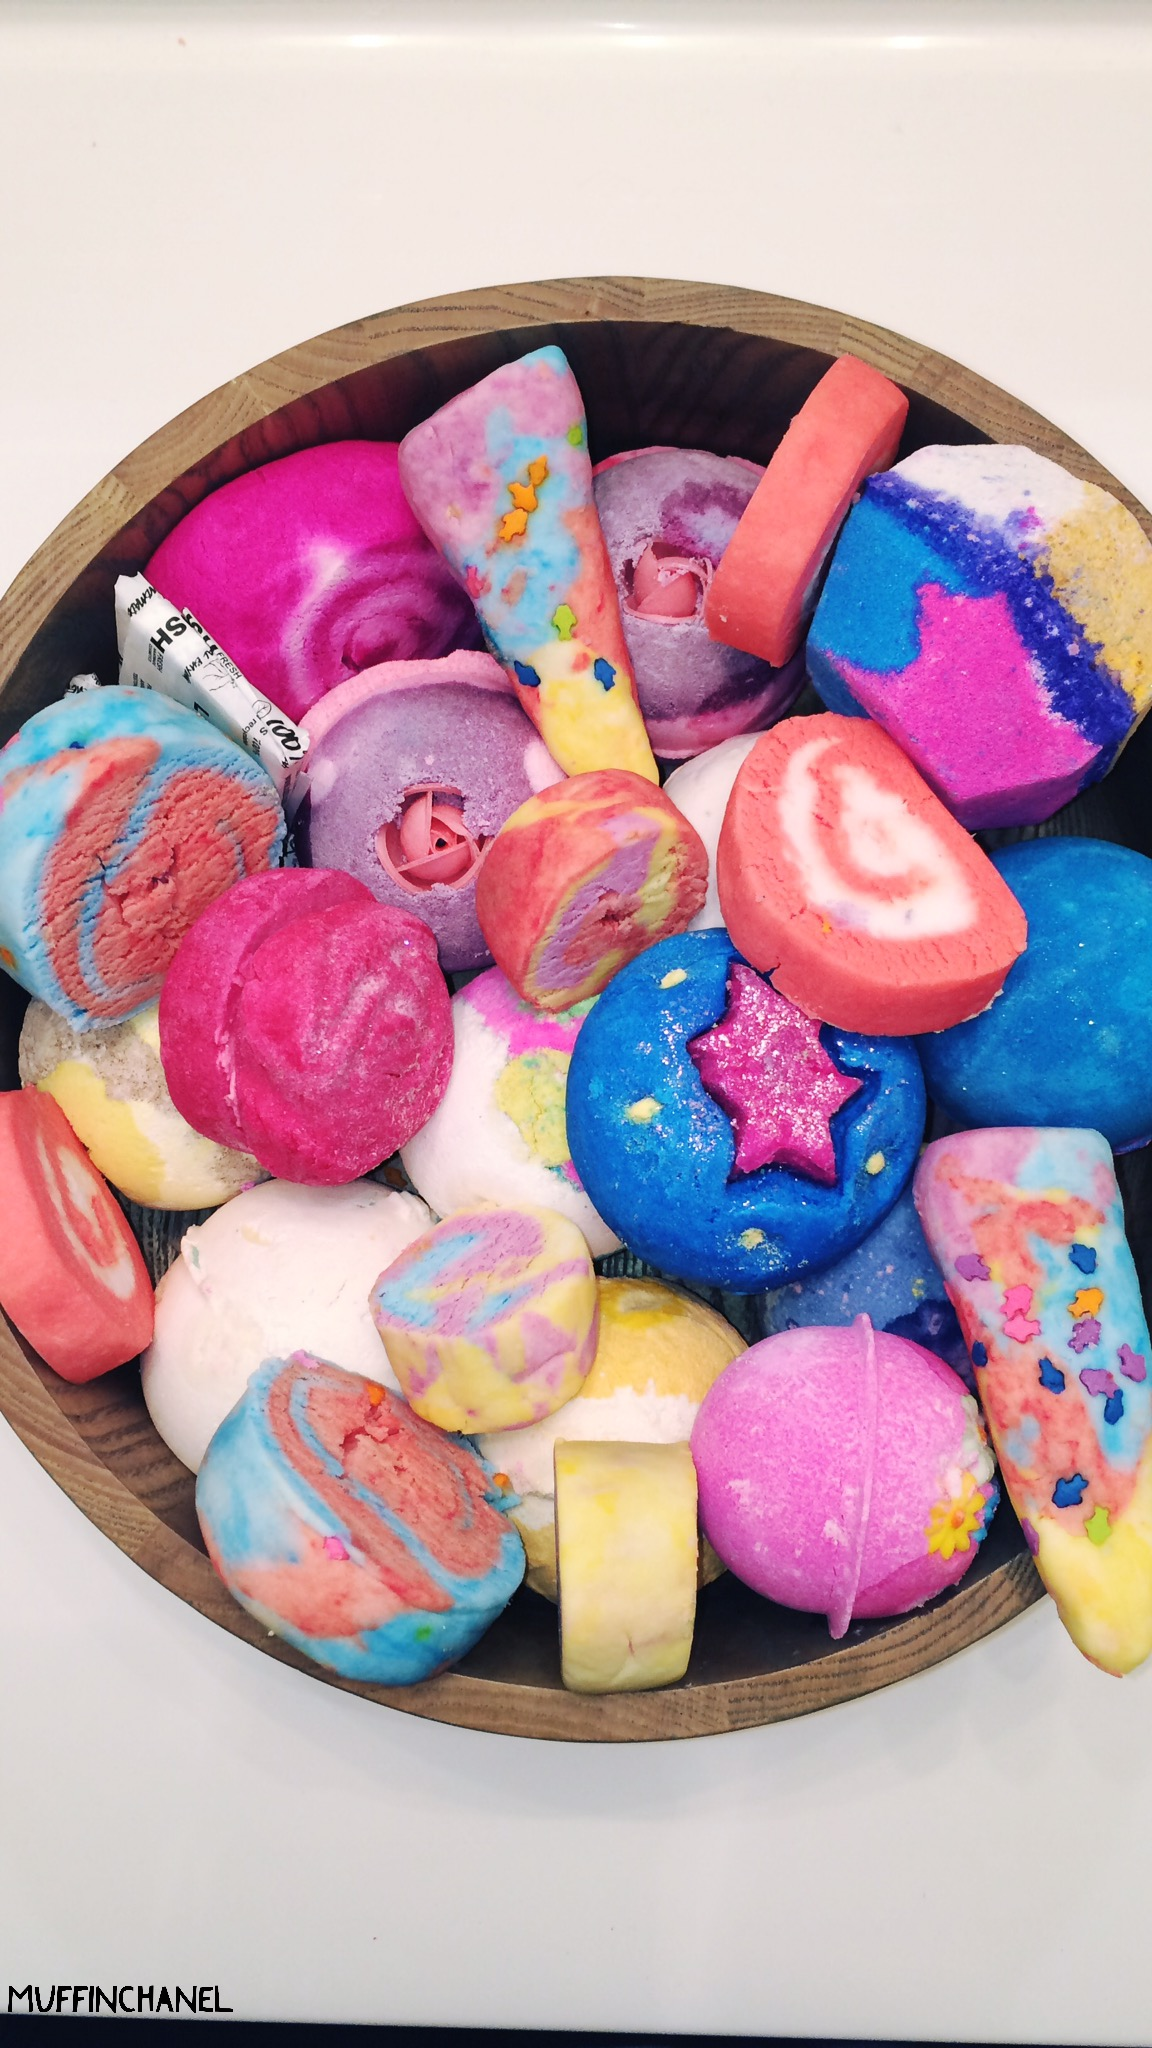 Make Your Own Bubble Bars LUSH Inspired MuffinChanel